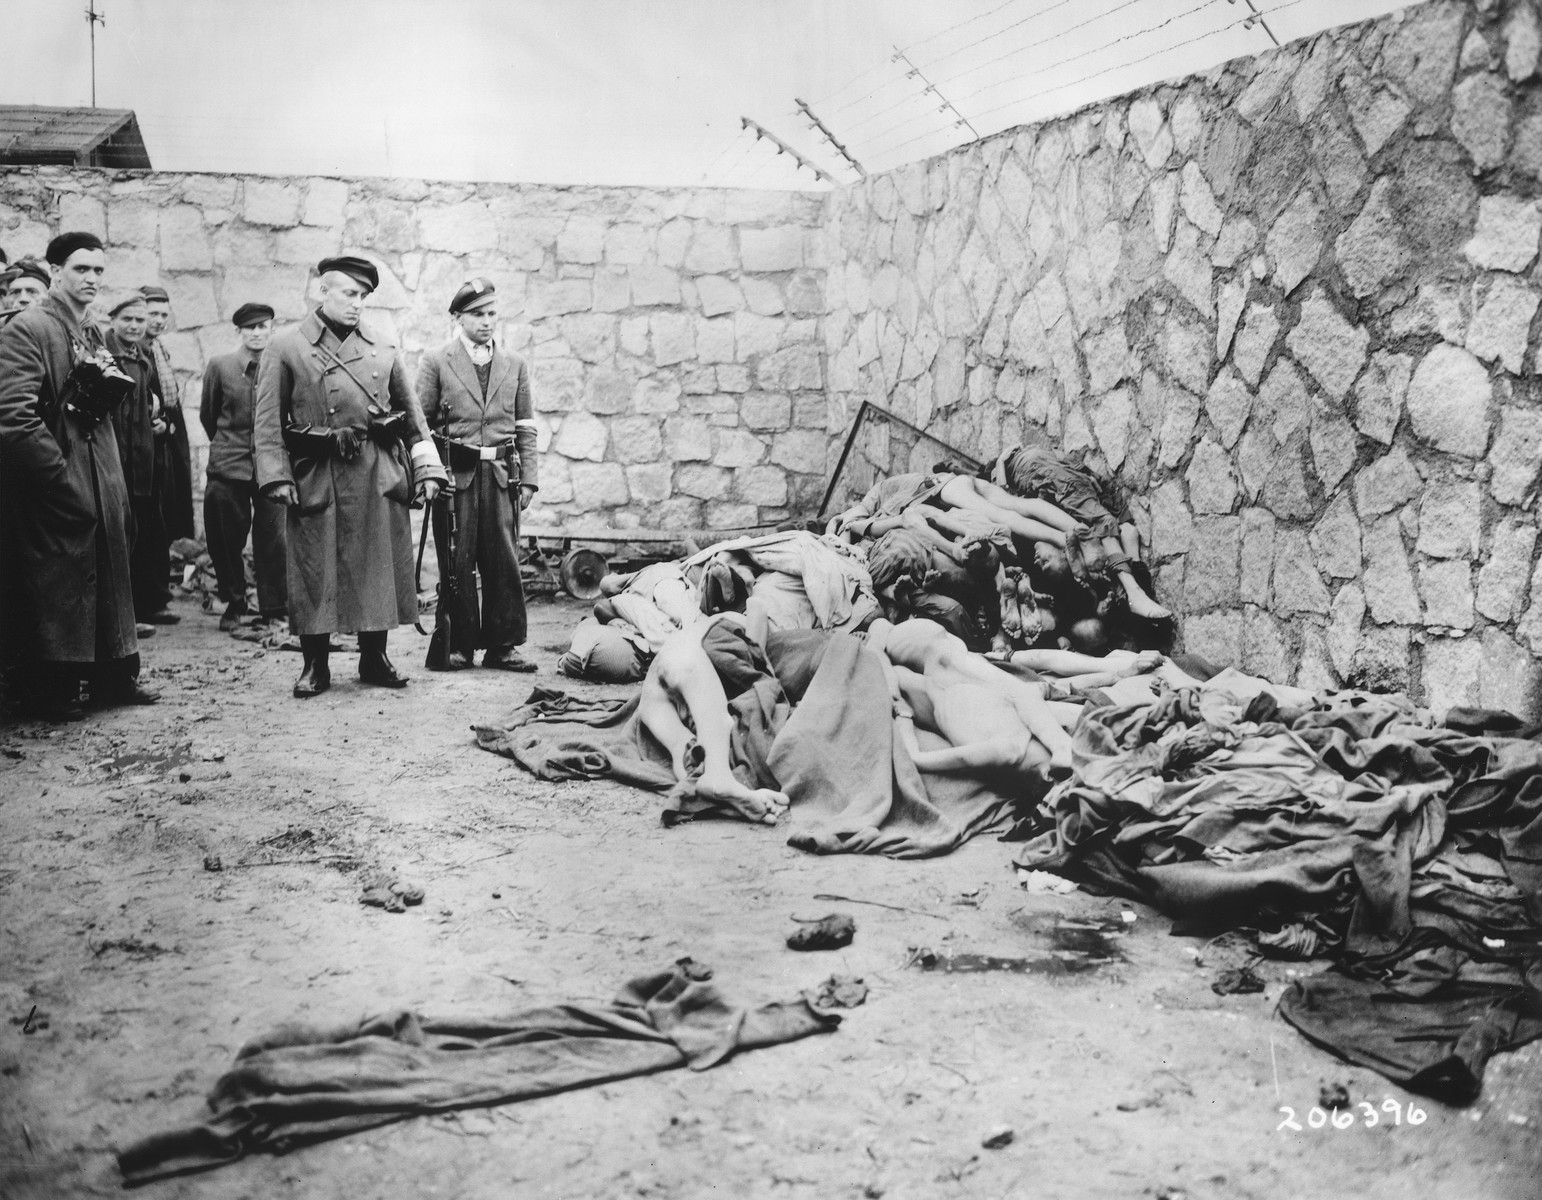 Photographer Francisco Boix and other survivors view a pile of corpses lying among abandoned blankets and clothing in front of a stone wall in the Mauthausen concentration camp.